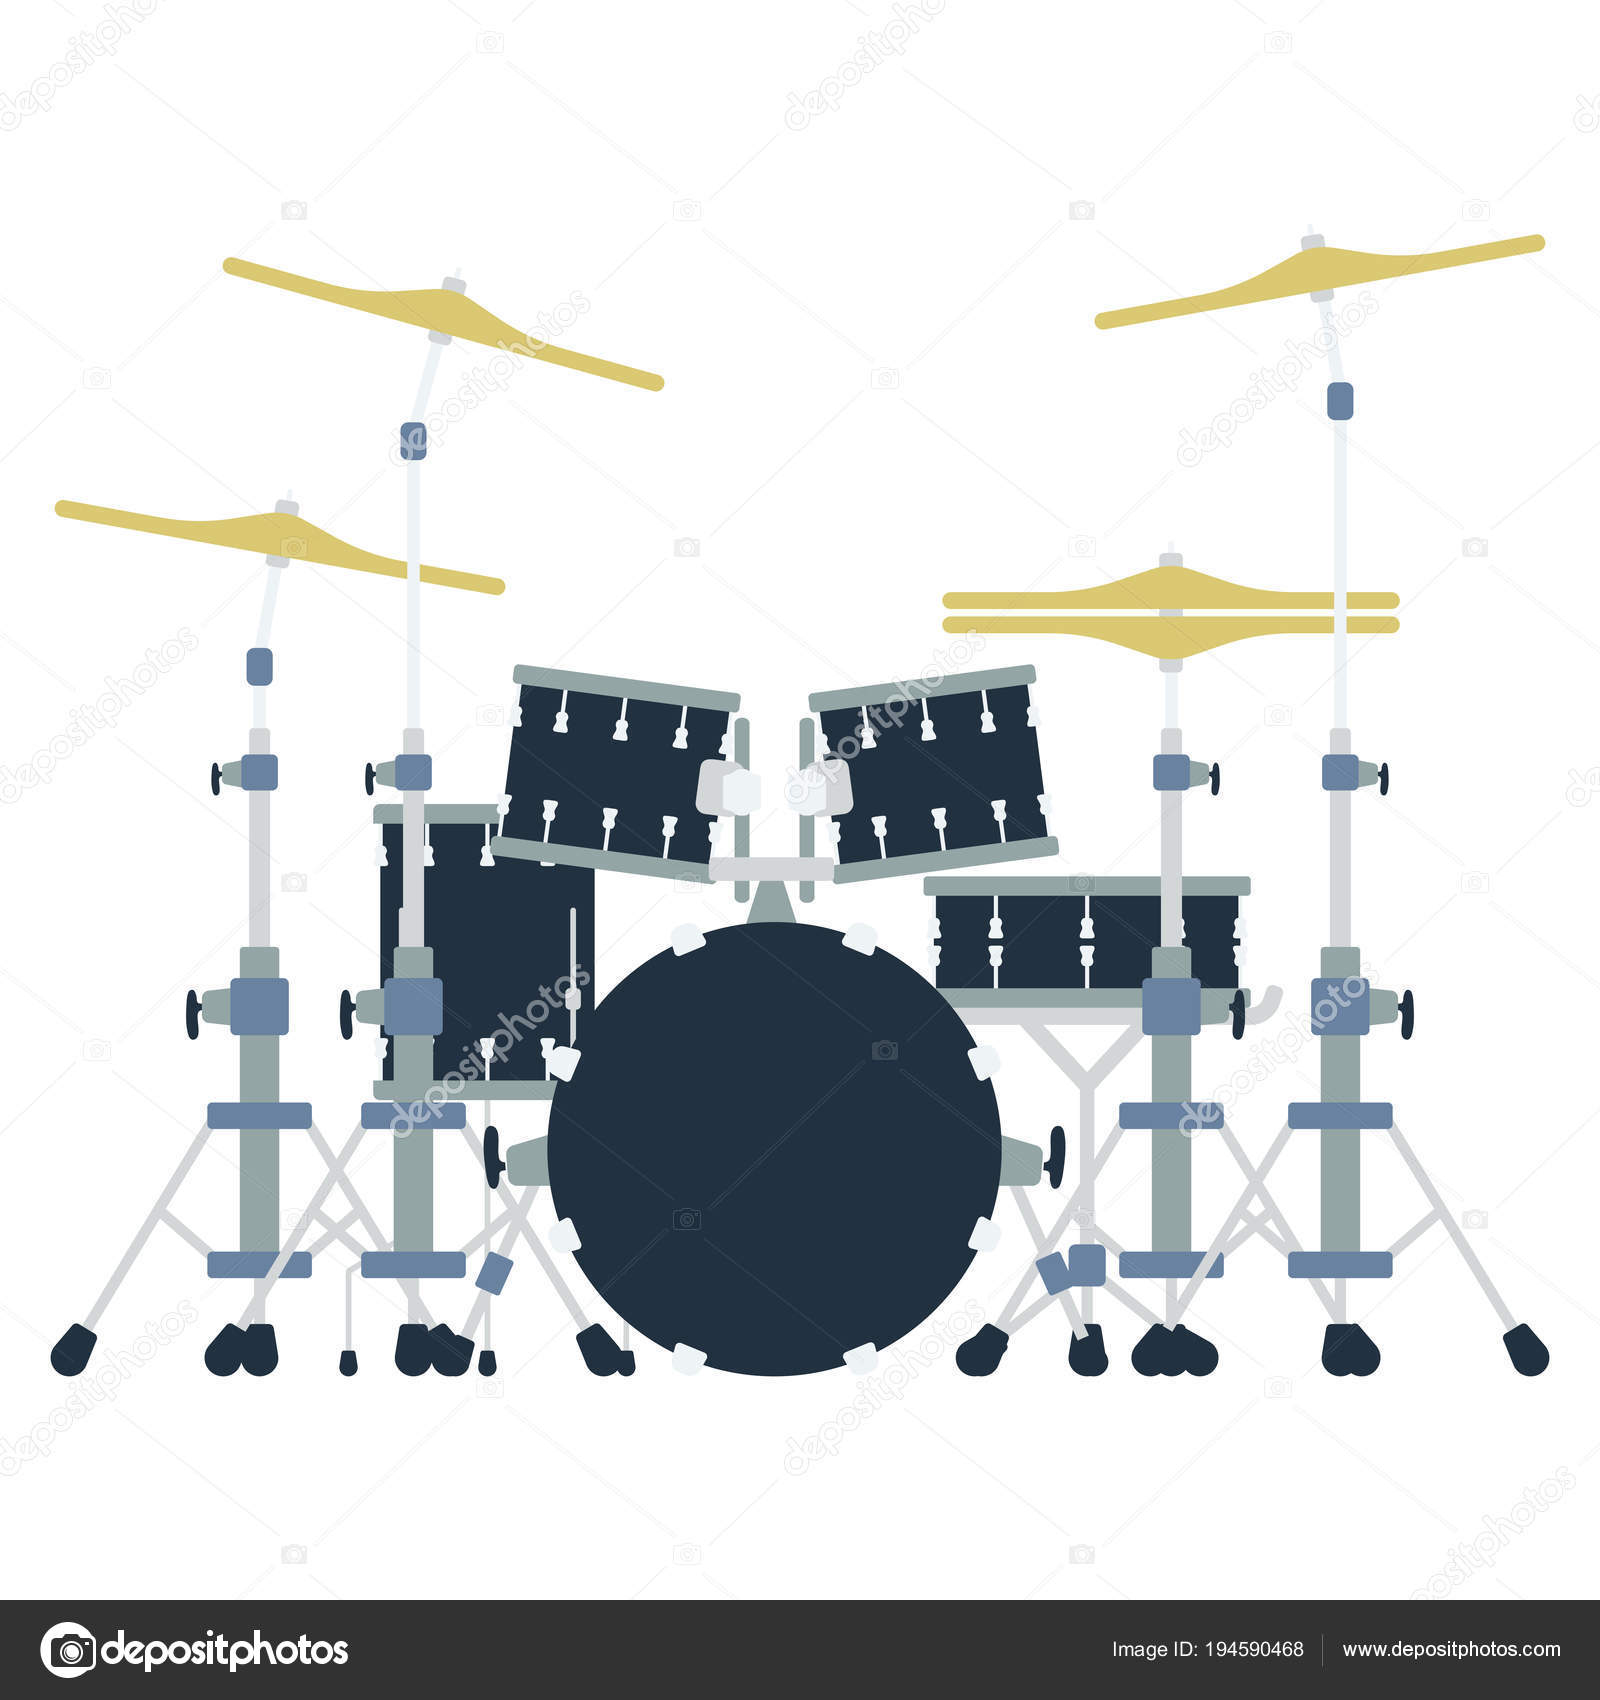 hight resolution of drum set icon flat color design vector illustration stock vector